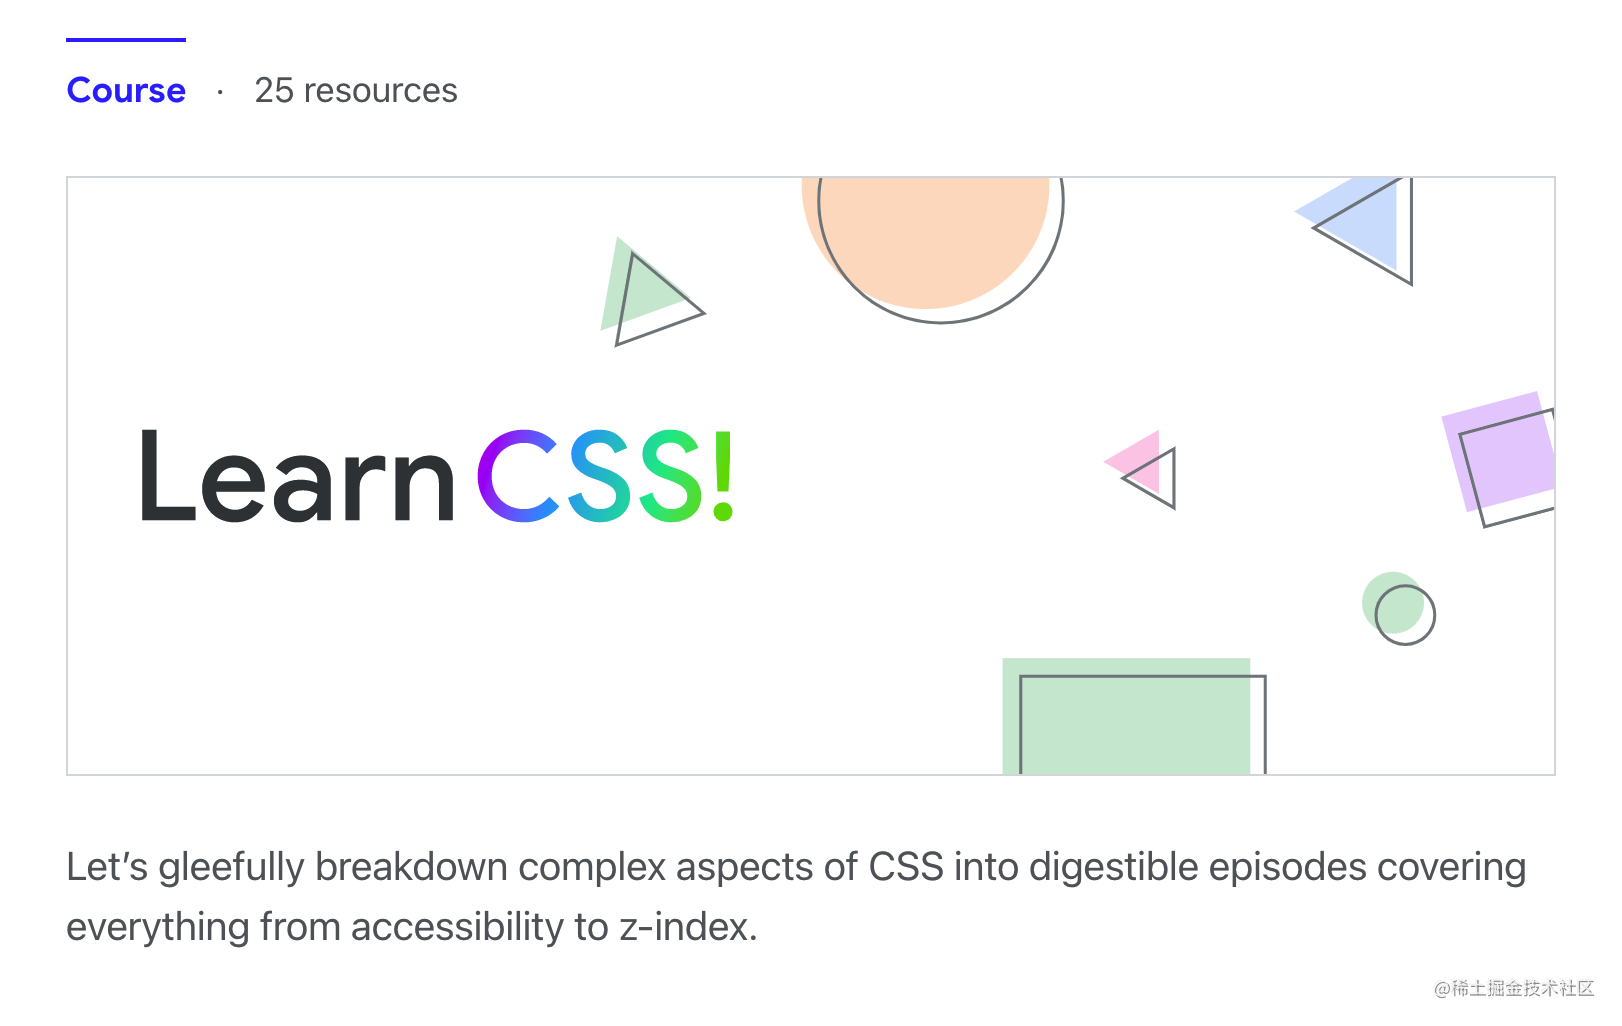 202105_learn-css